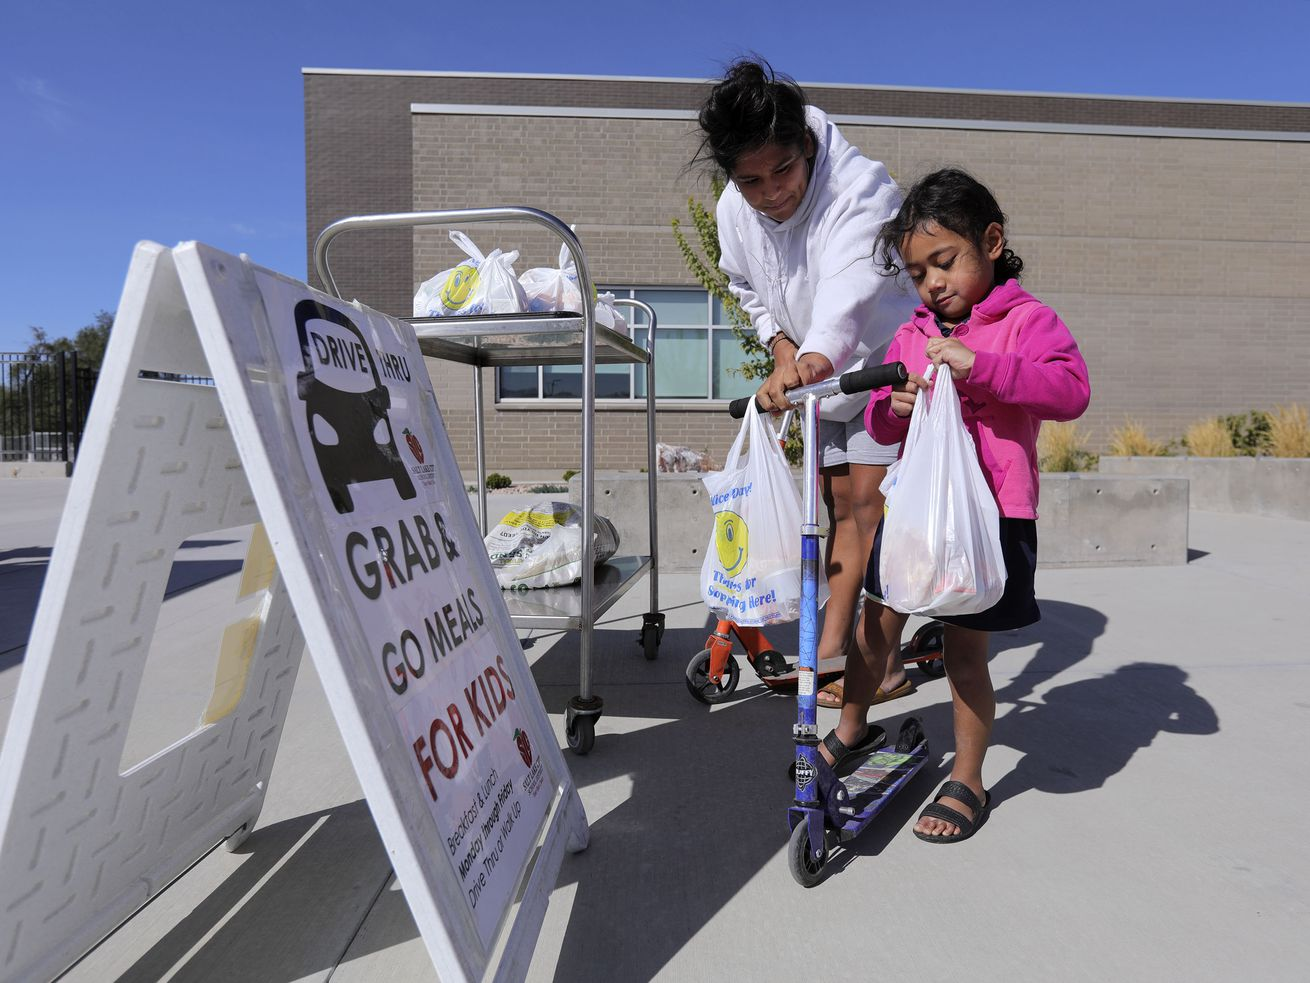 Salt Lake District expands hours, locations of student meal program